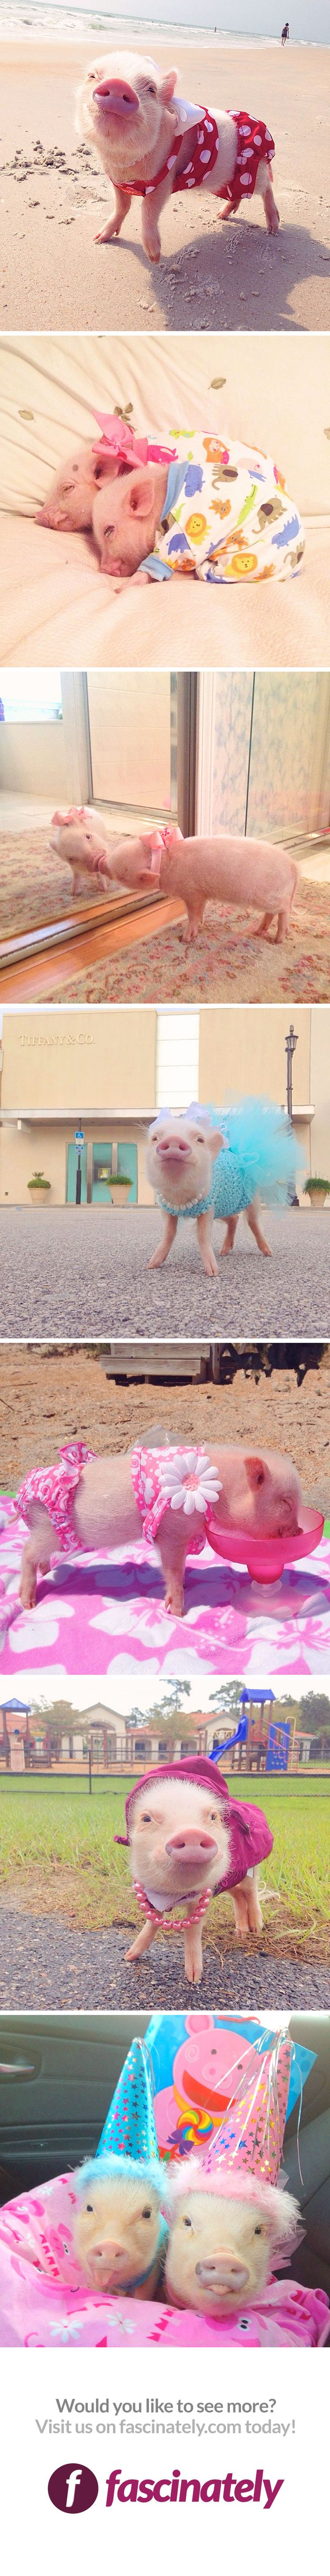 Meet the most adorable, popular pig on instagram! Shes pretty stylish, too – she loves to lay out